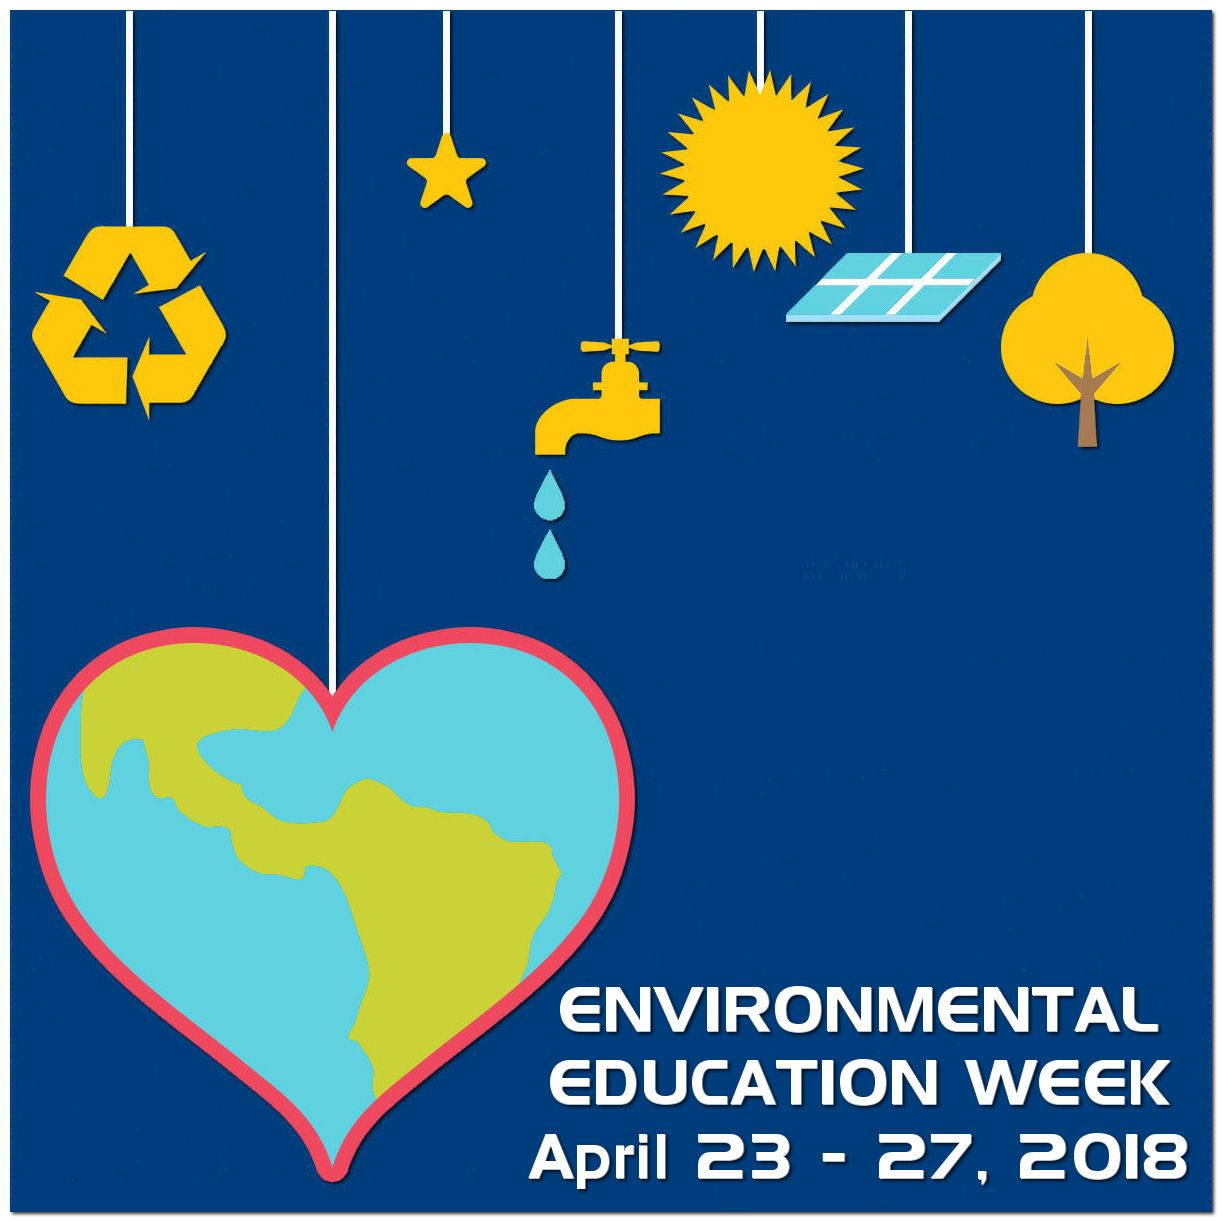 Environmental Education Week, April 23 27, 2018 | Celebrate